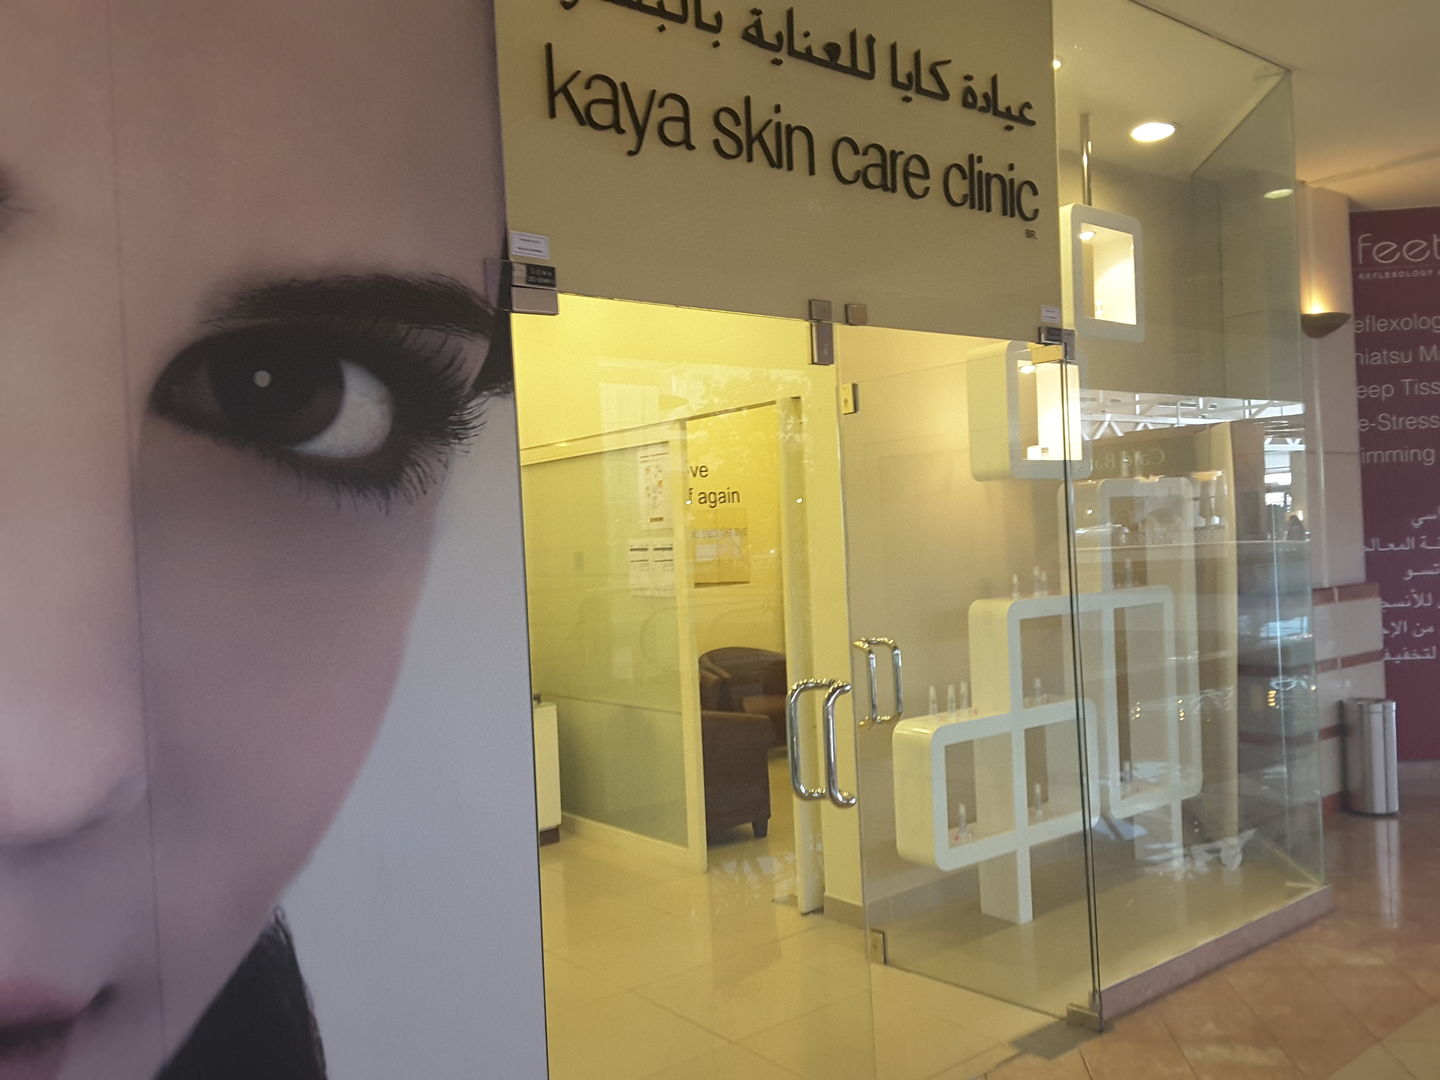 HiDubai-business-kaya-skin-care-clinic-beauty-wellness-health-specialty-clinics-jumeirah-1-dubai-4